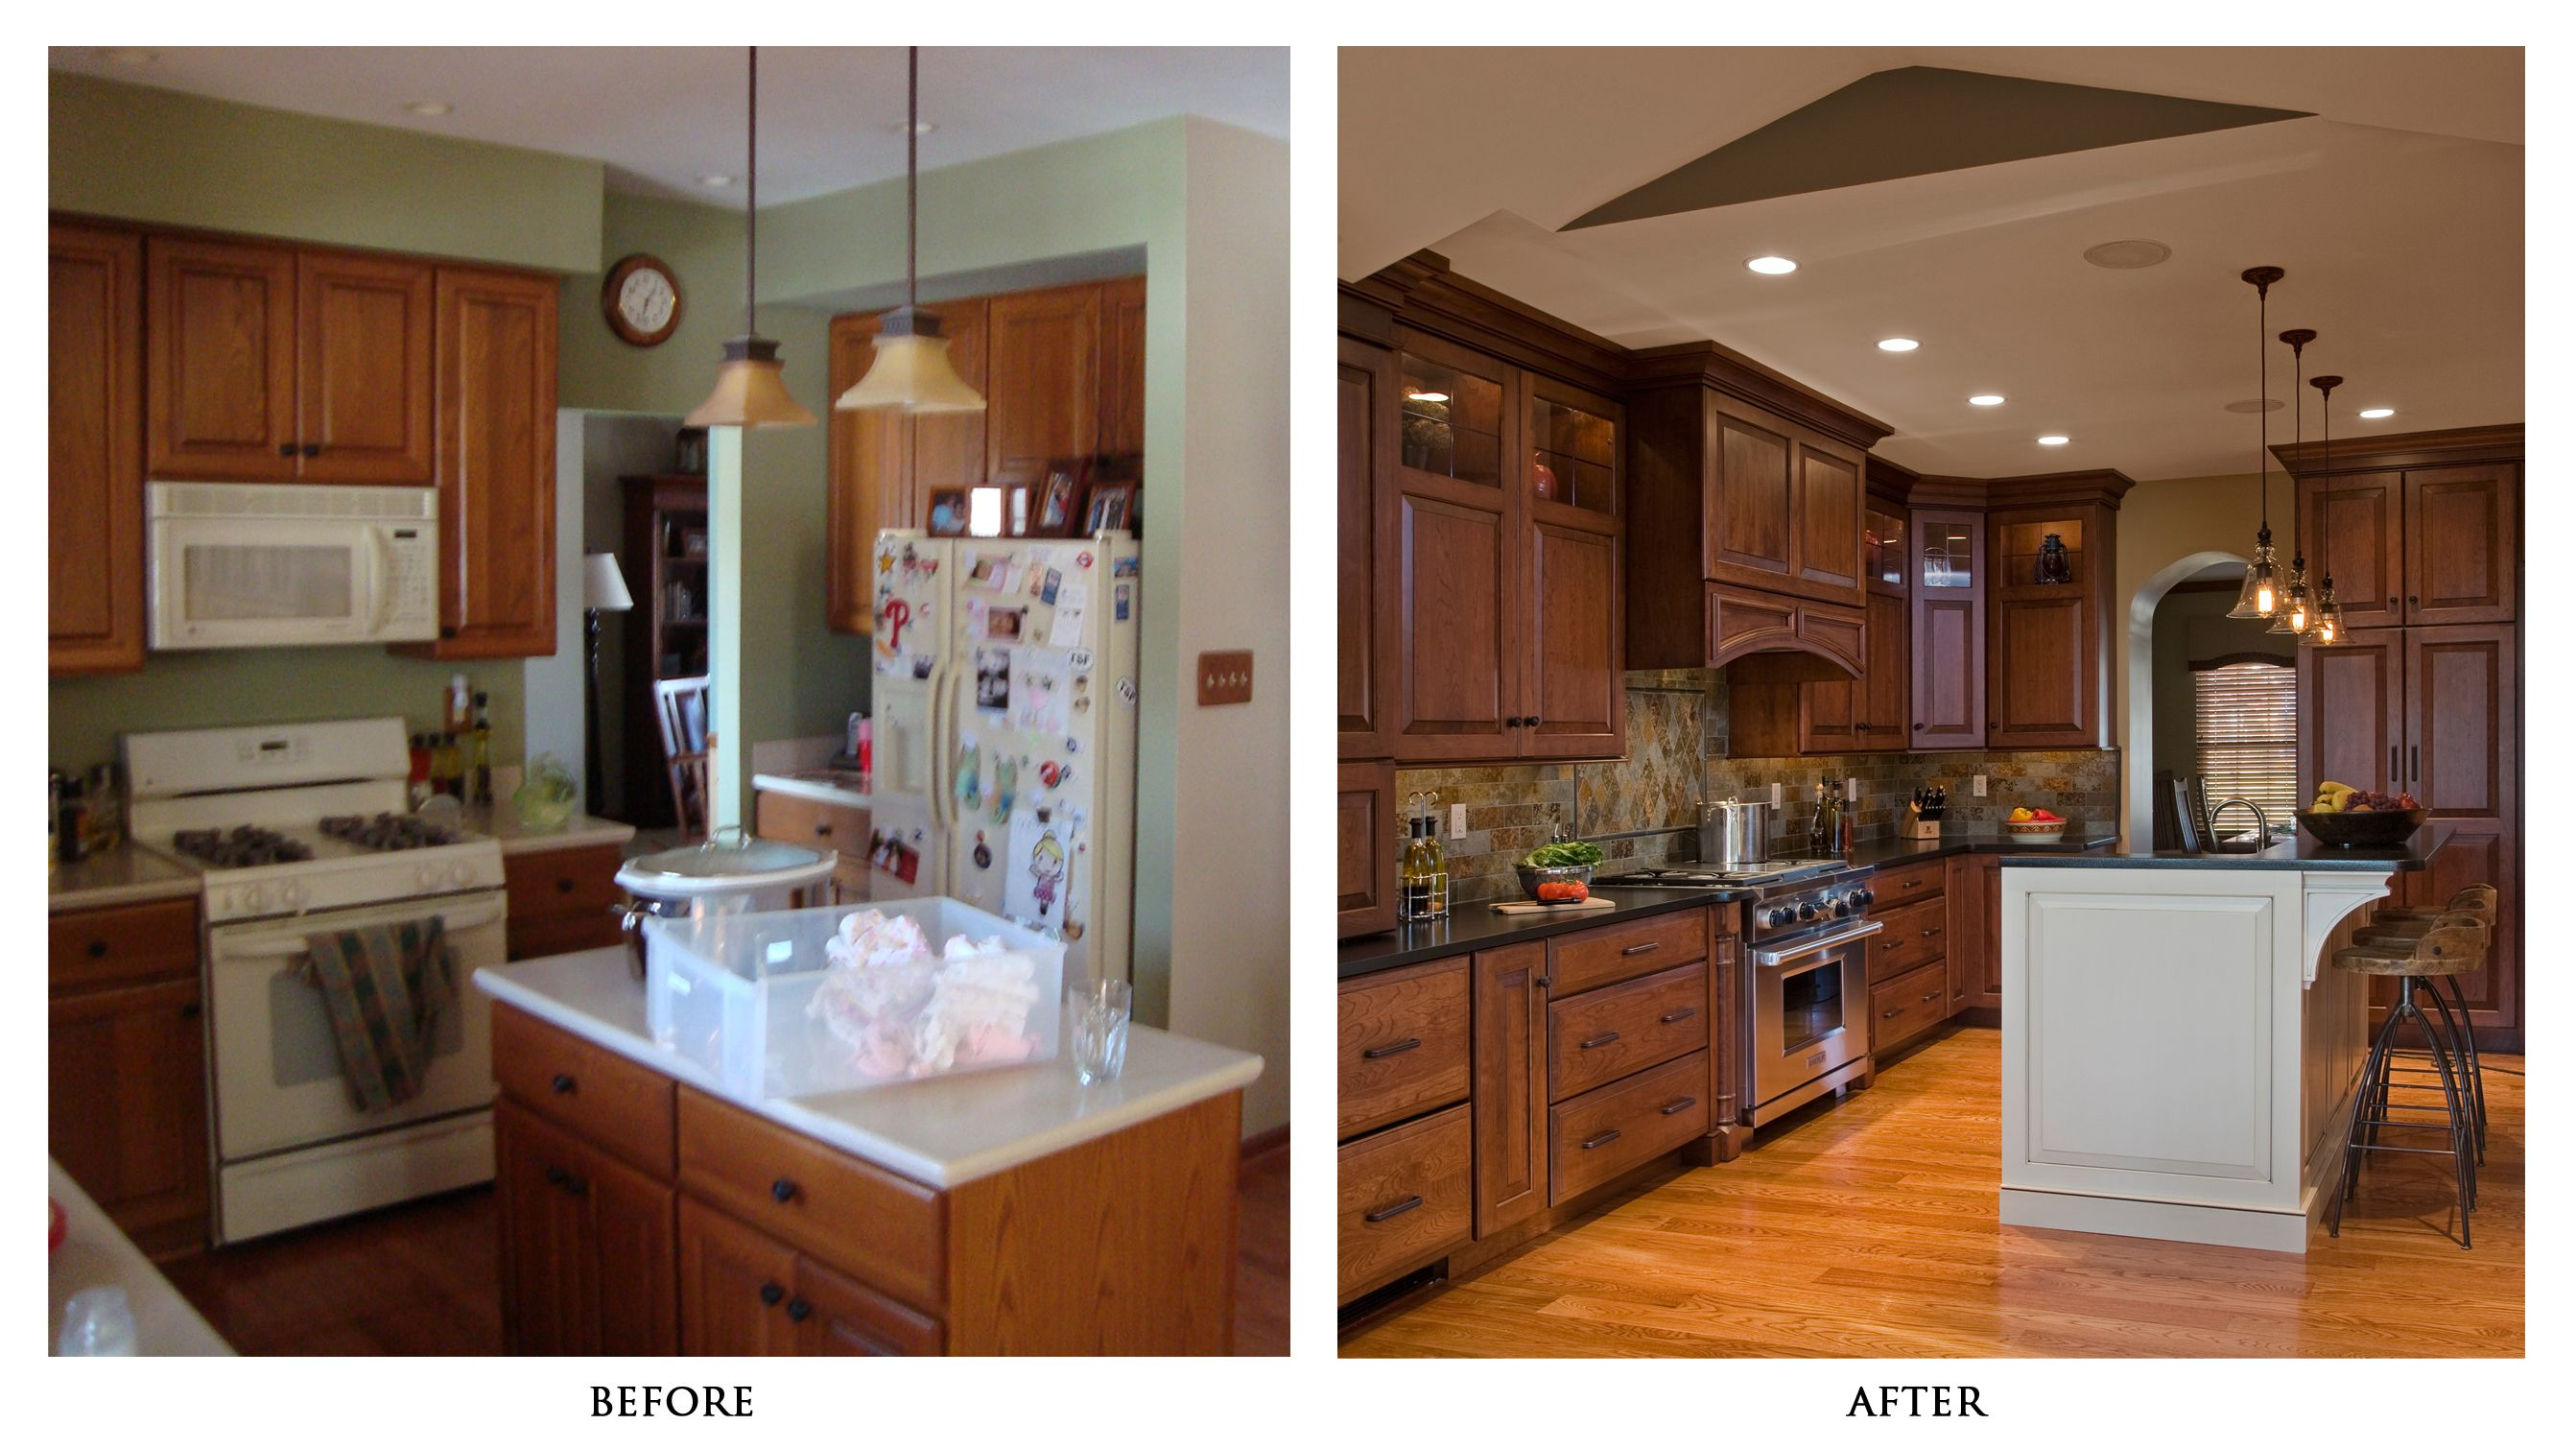 Remodelling Kitchen Kitchen Remodel Before And After Google Search 1960s Remodel